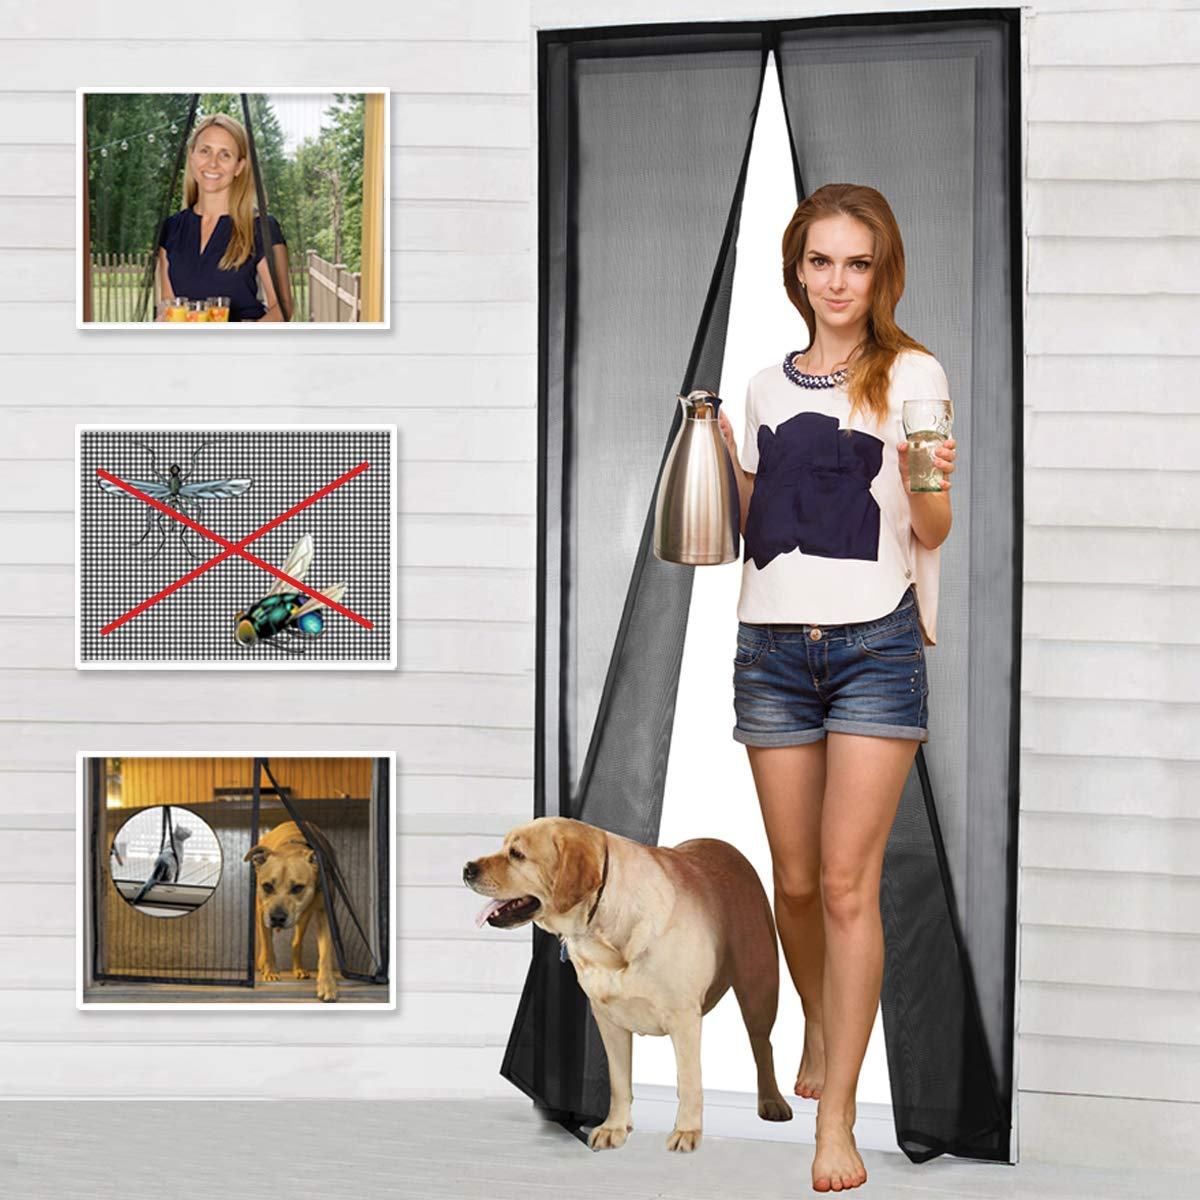 "Magnetic Screen Door Fiberglass Mesh Screen Door with Magnets, Fly Mosquitos Bug Insect Screen for Sliding Glass Door French Door Patio Door, Full Frame Hook & Loop, Hands Free, Pet Friendly (34""x82"")"